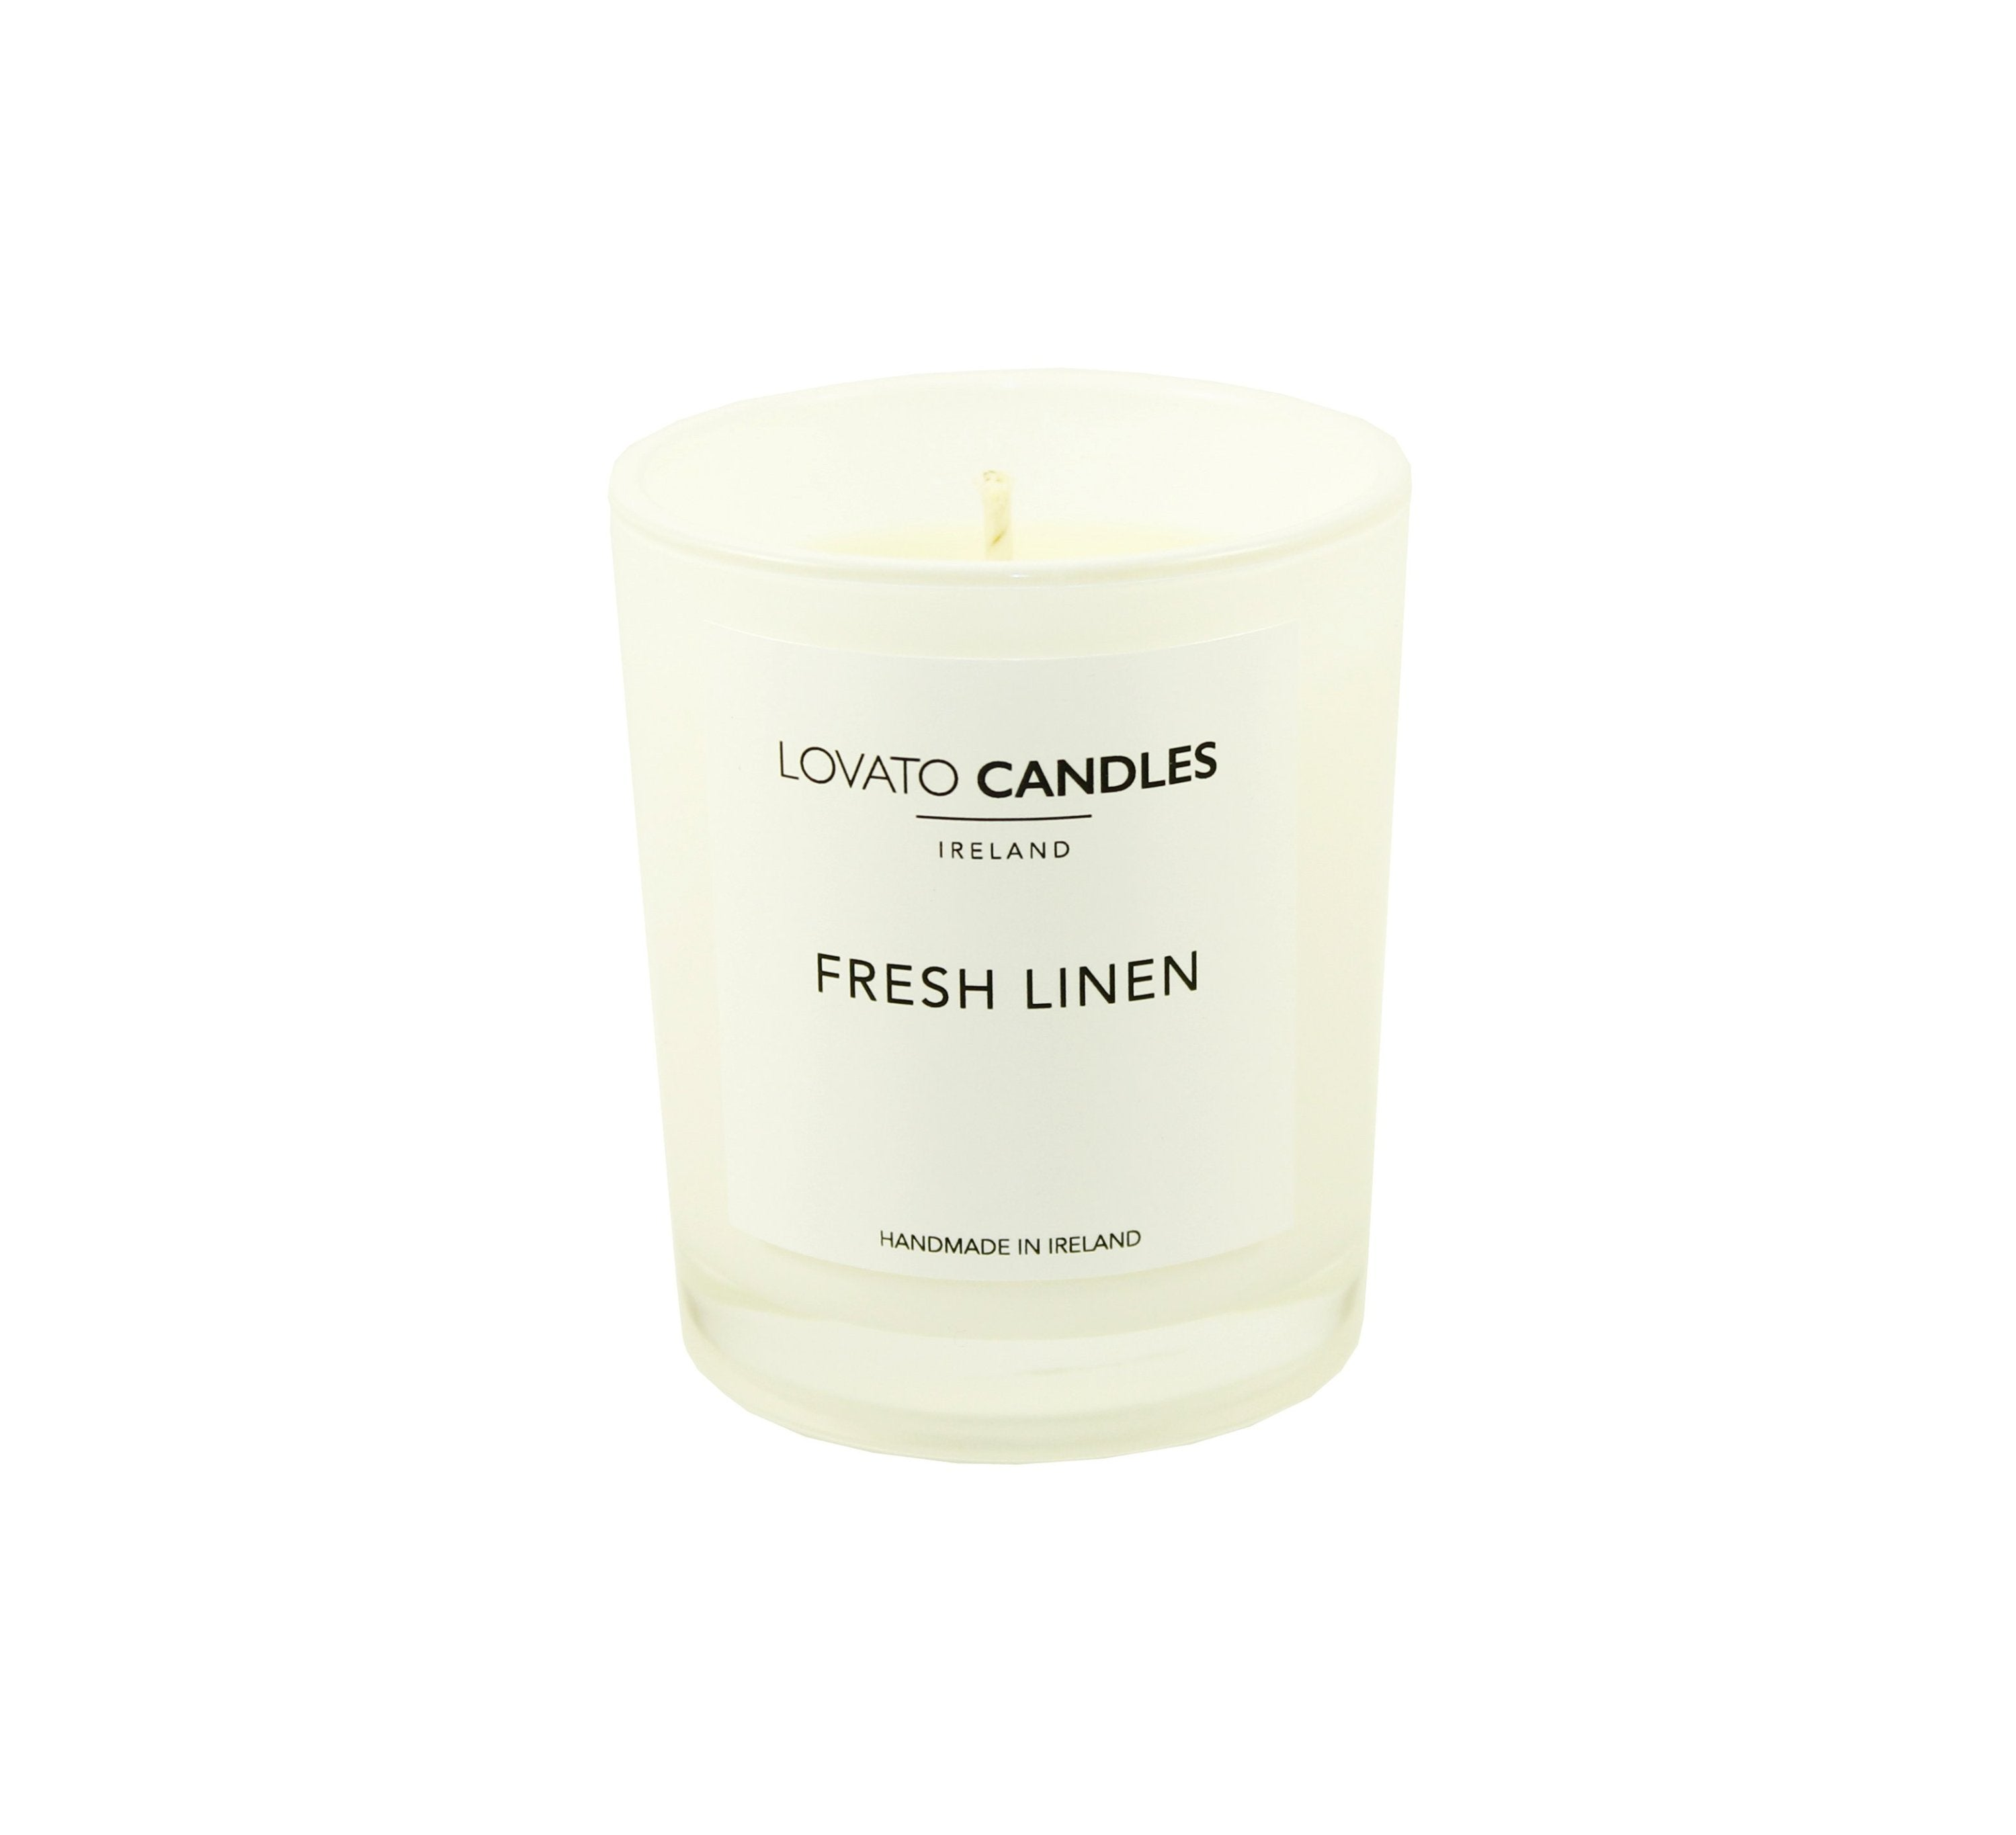 White Votive Candle - Fresh Linen - Lovato Candles